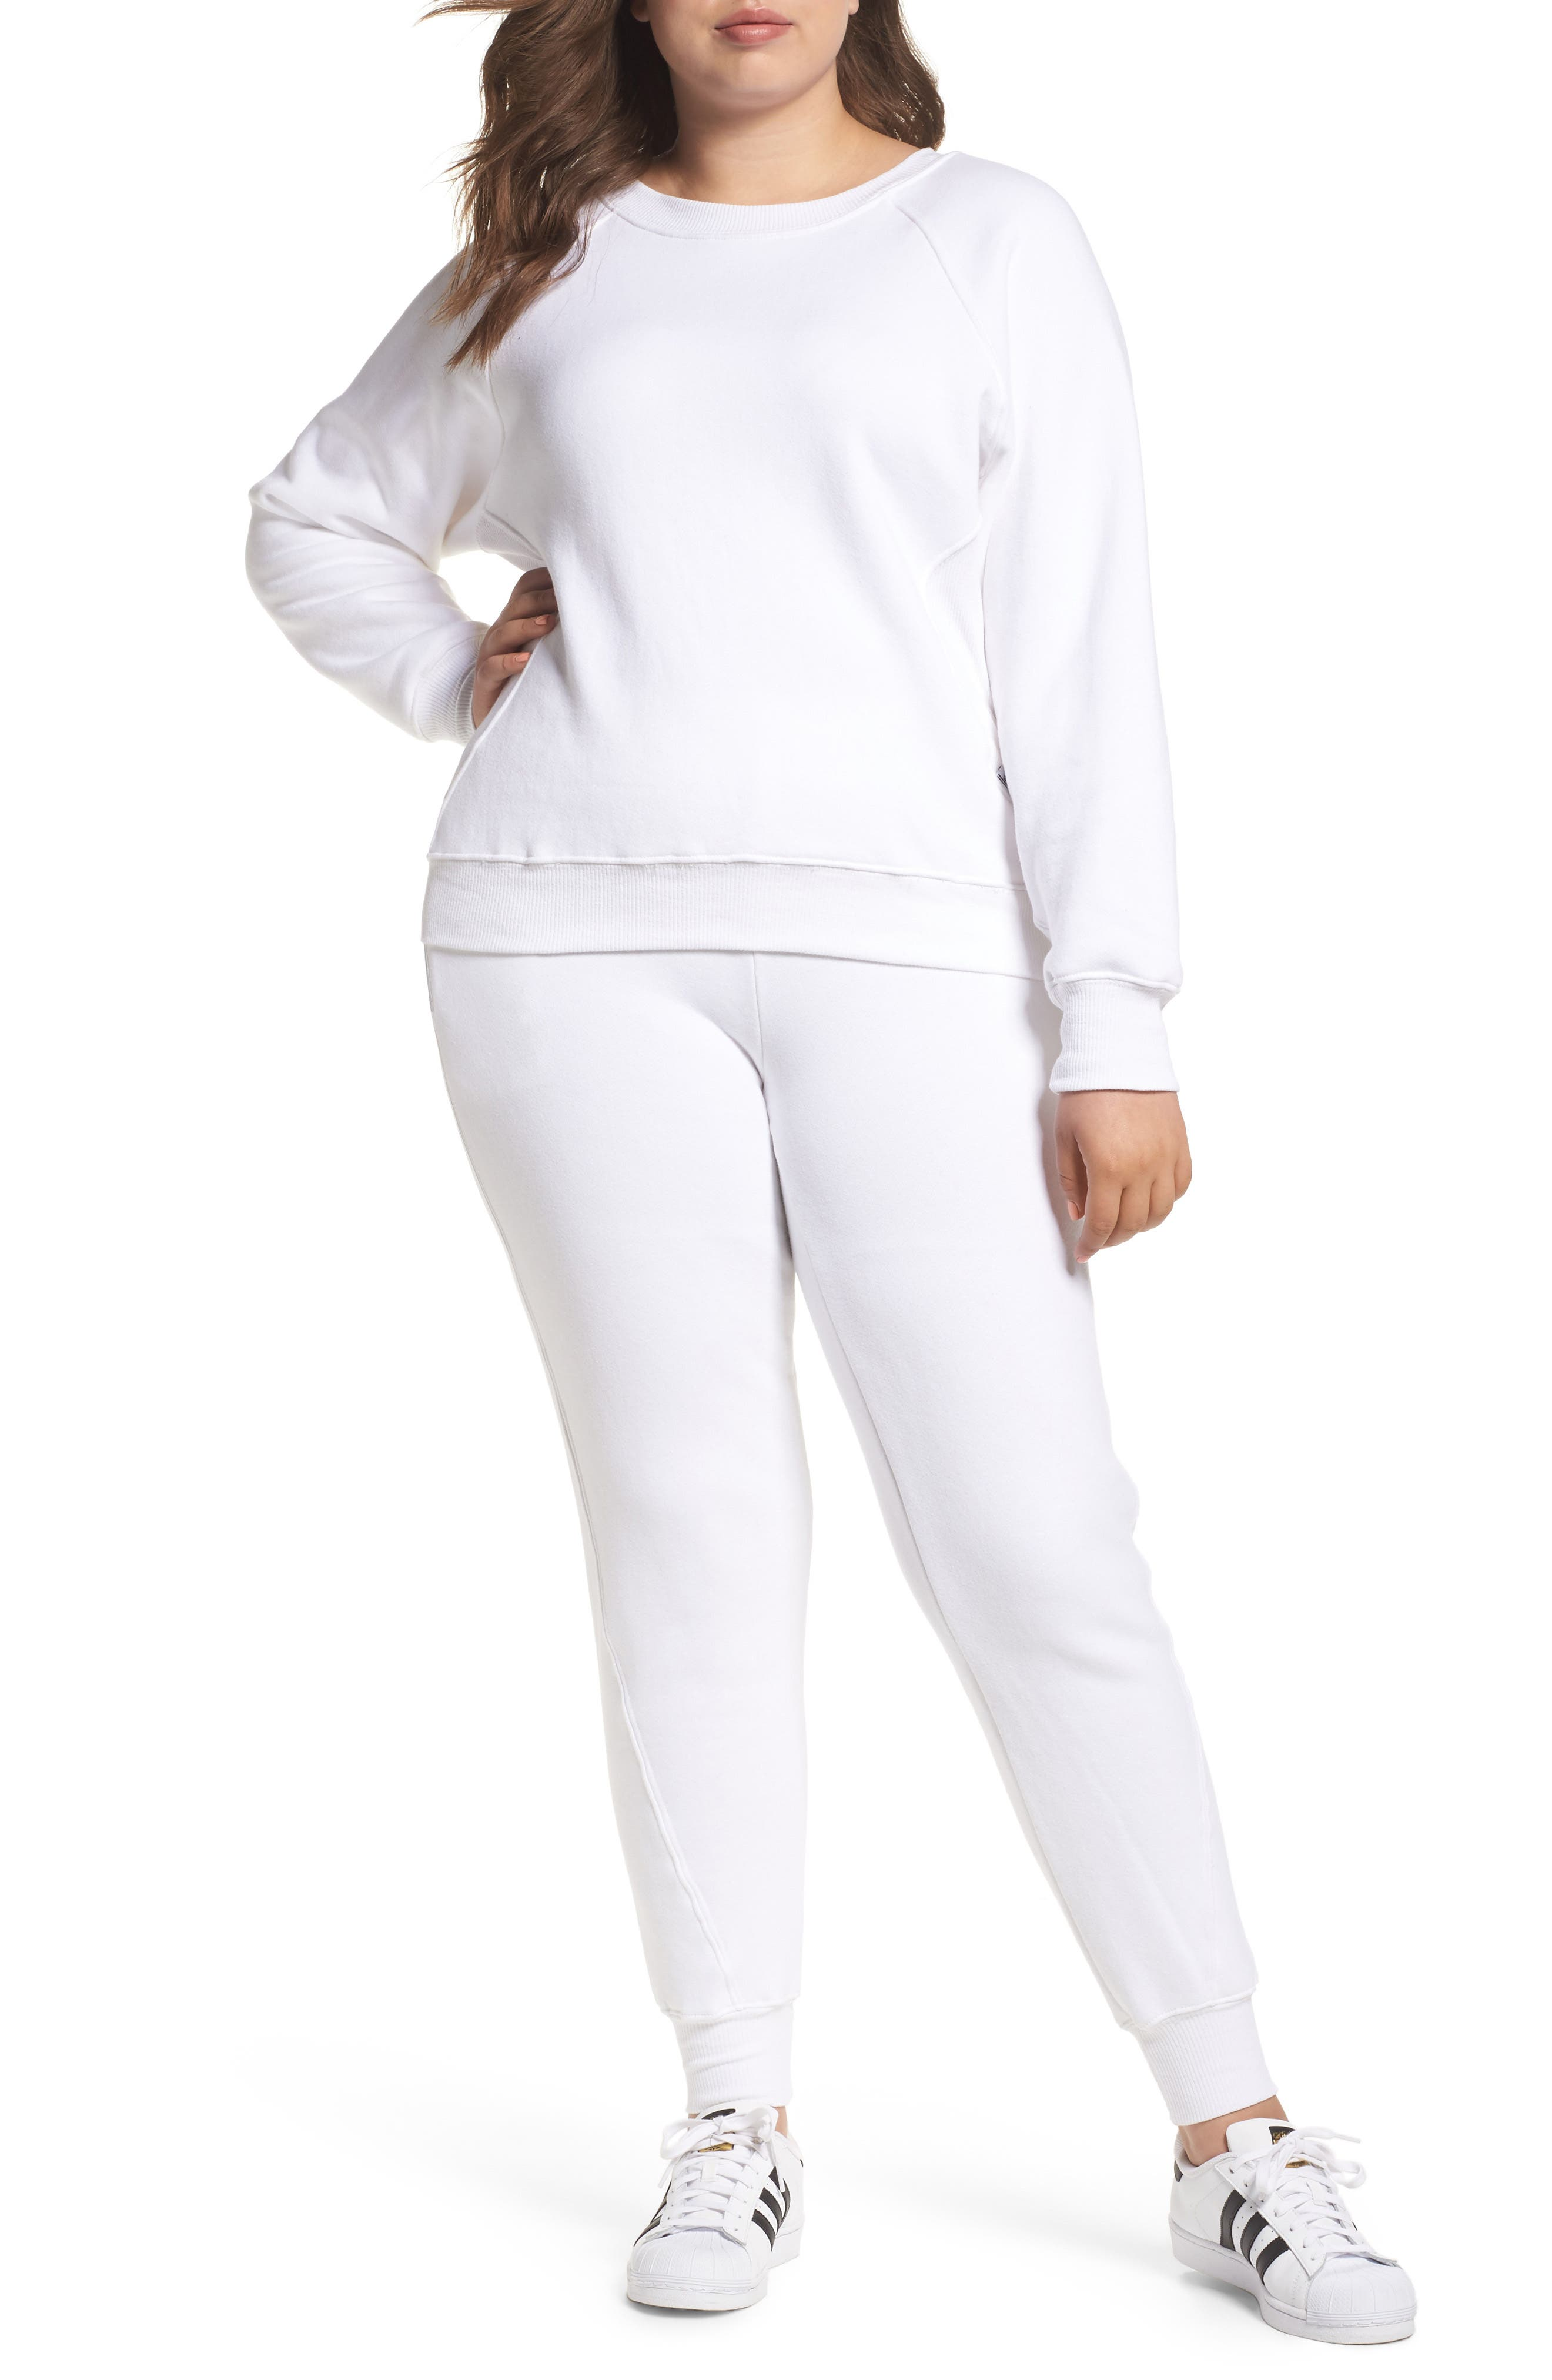 Good Sweats The Twisted Seam Pants,                             Alternate thumbnail 4, color,                             Off White